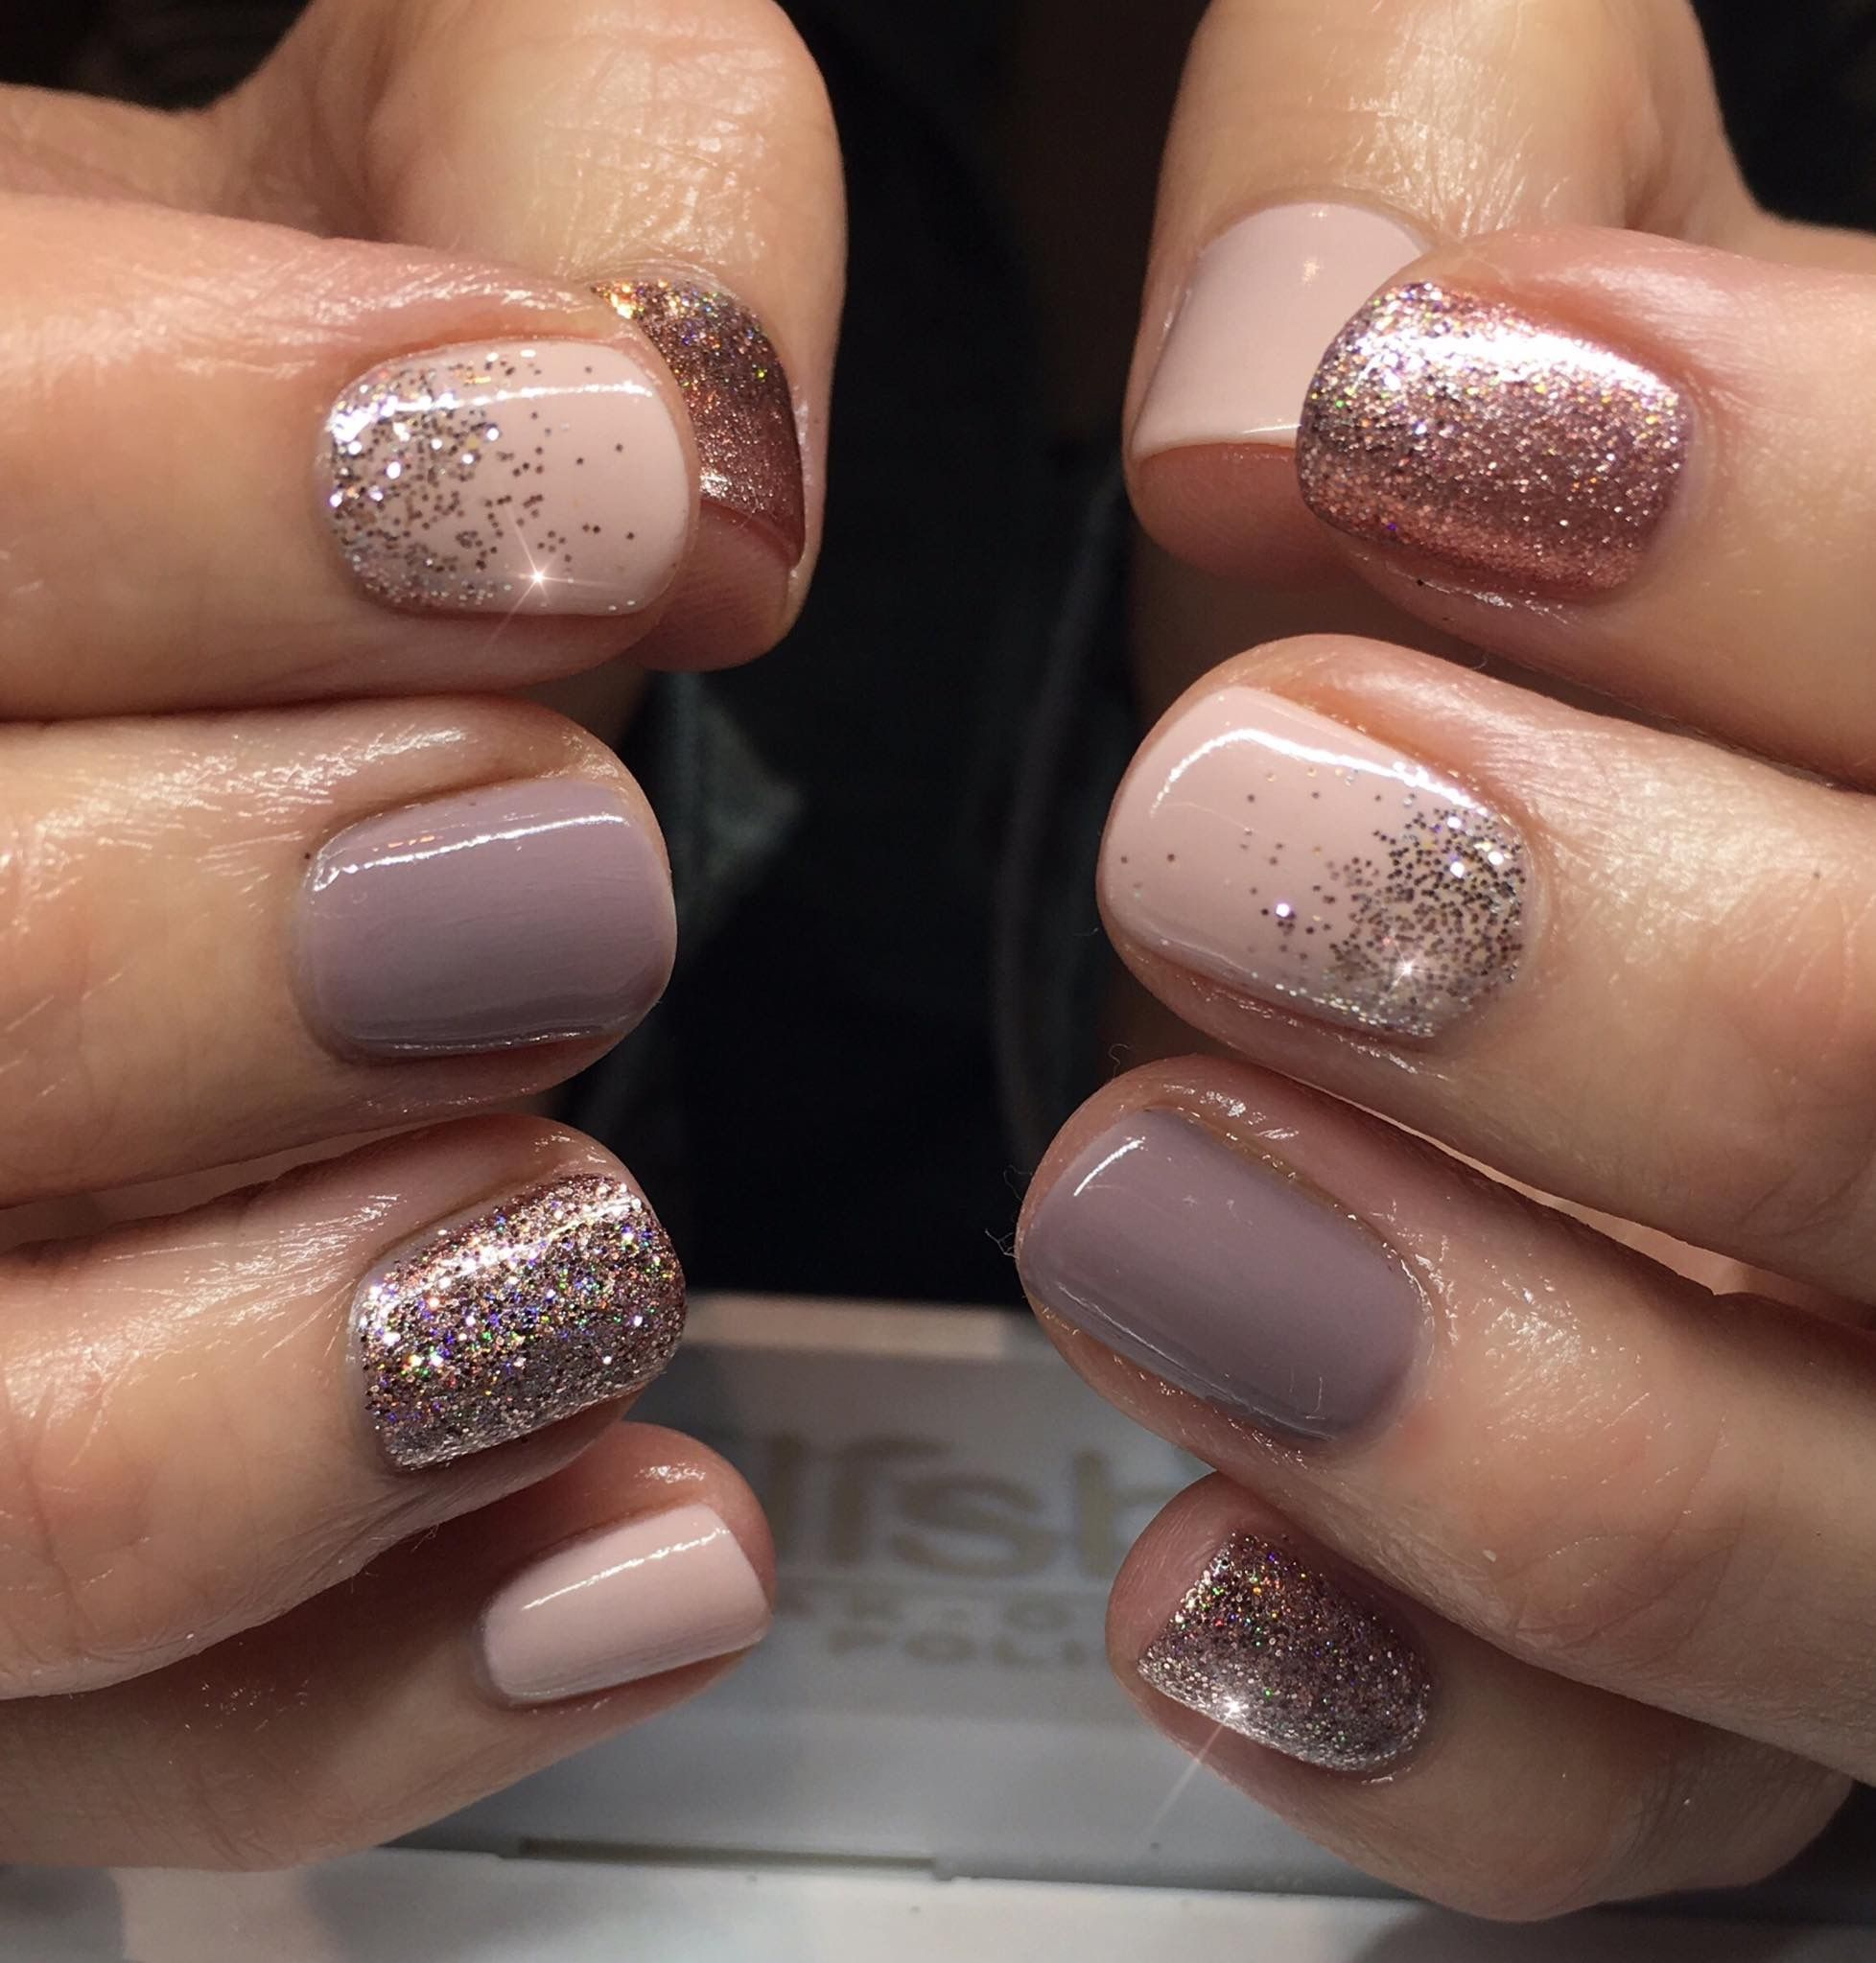 Ooh La La Nails Love This Nude And Brown Tone Manicure With A Hint